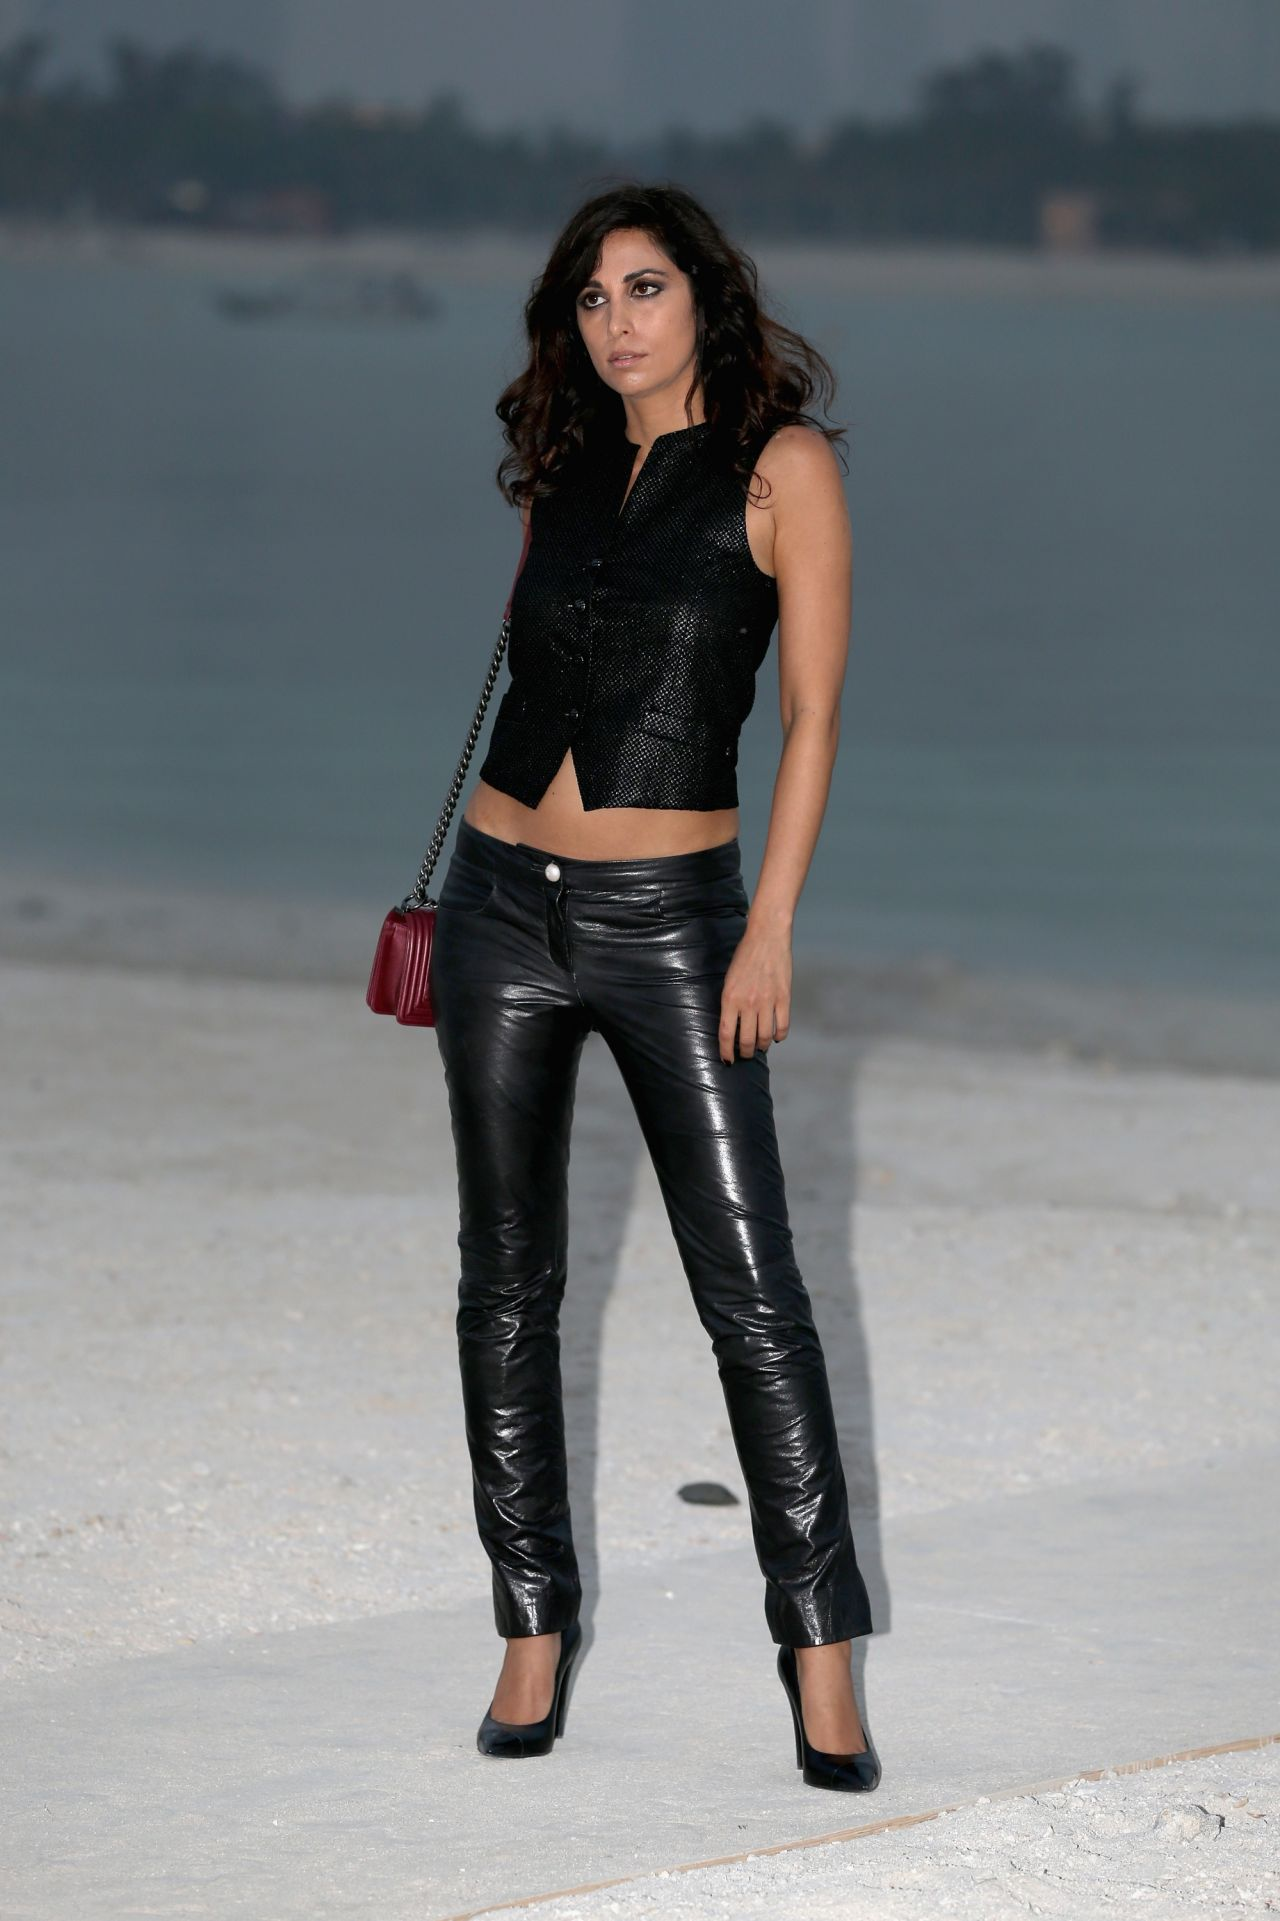 Yasmine Hamdan at Chanel Cruise Dubai Fashion Show - May 2014